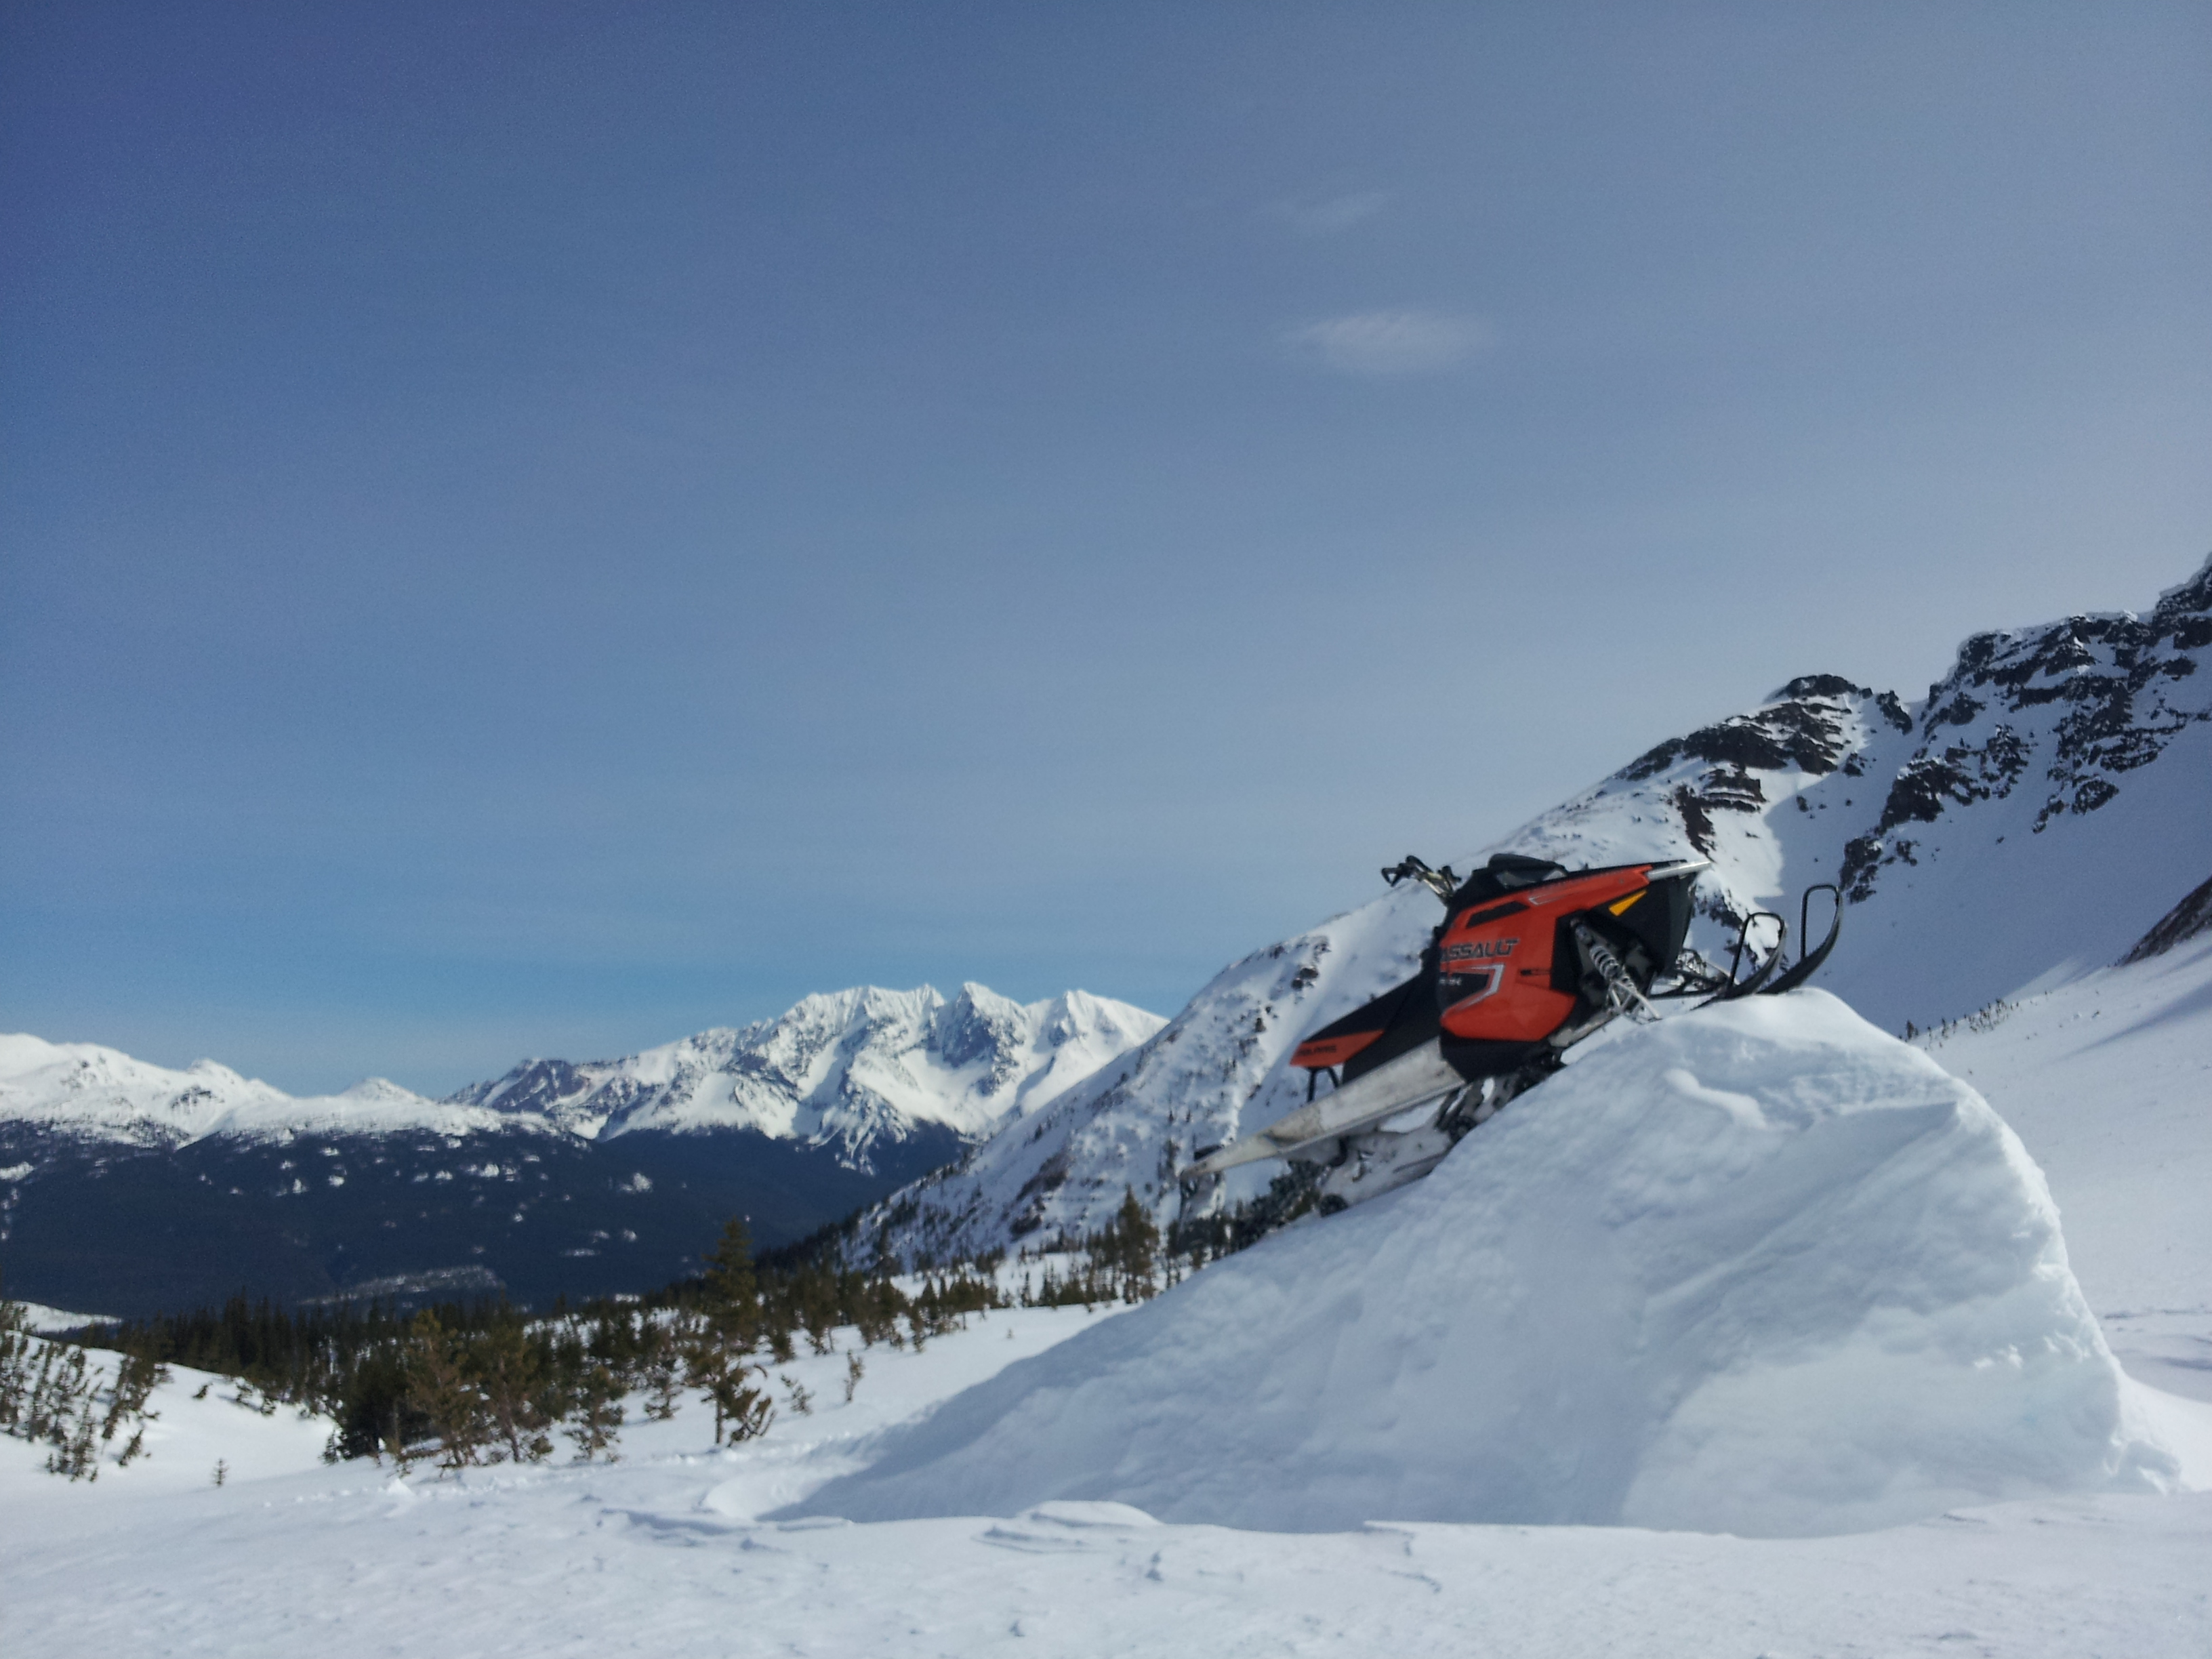 Snowmobile Smithers BC  At the Microwave Mountain